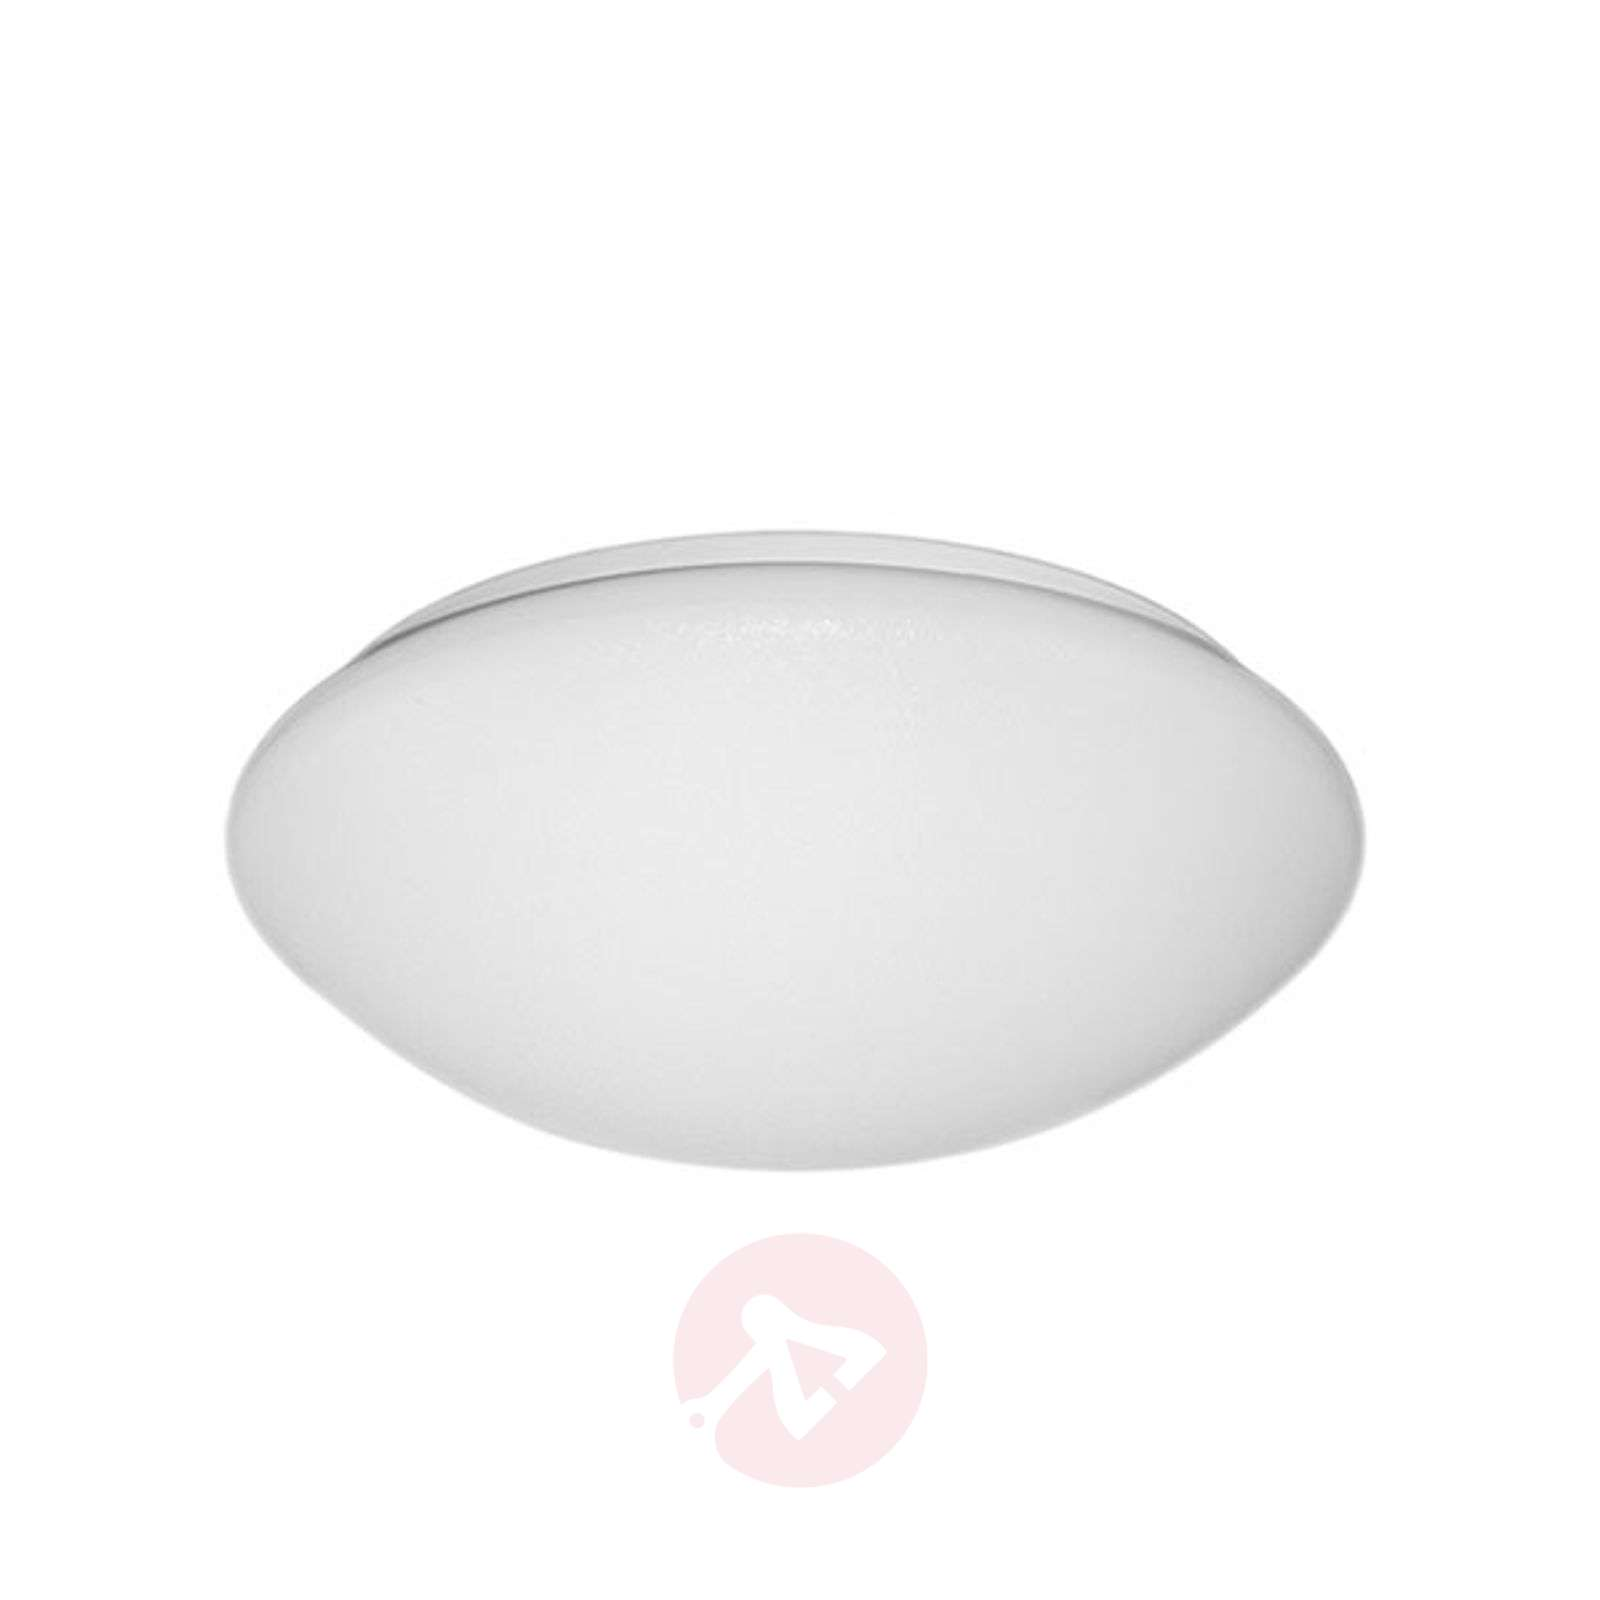 reputable site 2b571 43caa Round LED surface-mounted light, 14 W 3,000 K